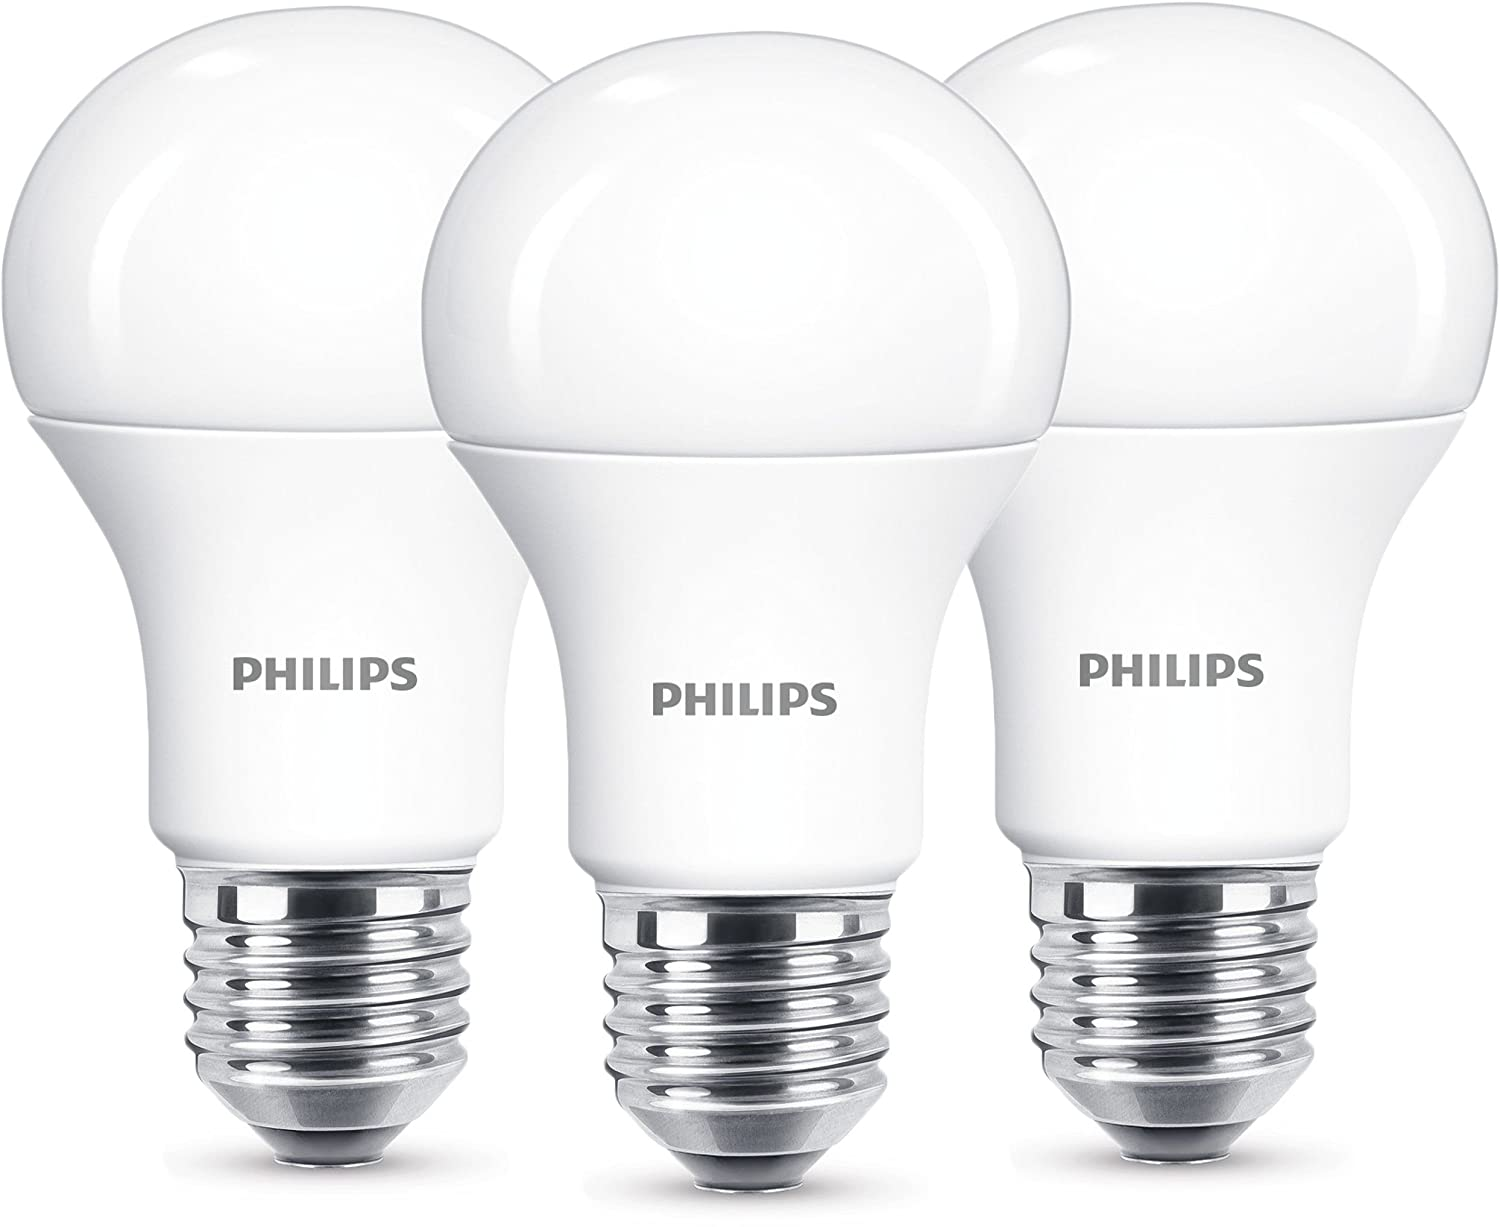 Led Lampen Direct : Philips led lampe ersetzt w warmweiß kelvin lumen